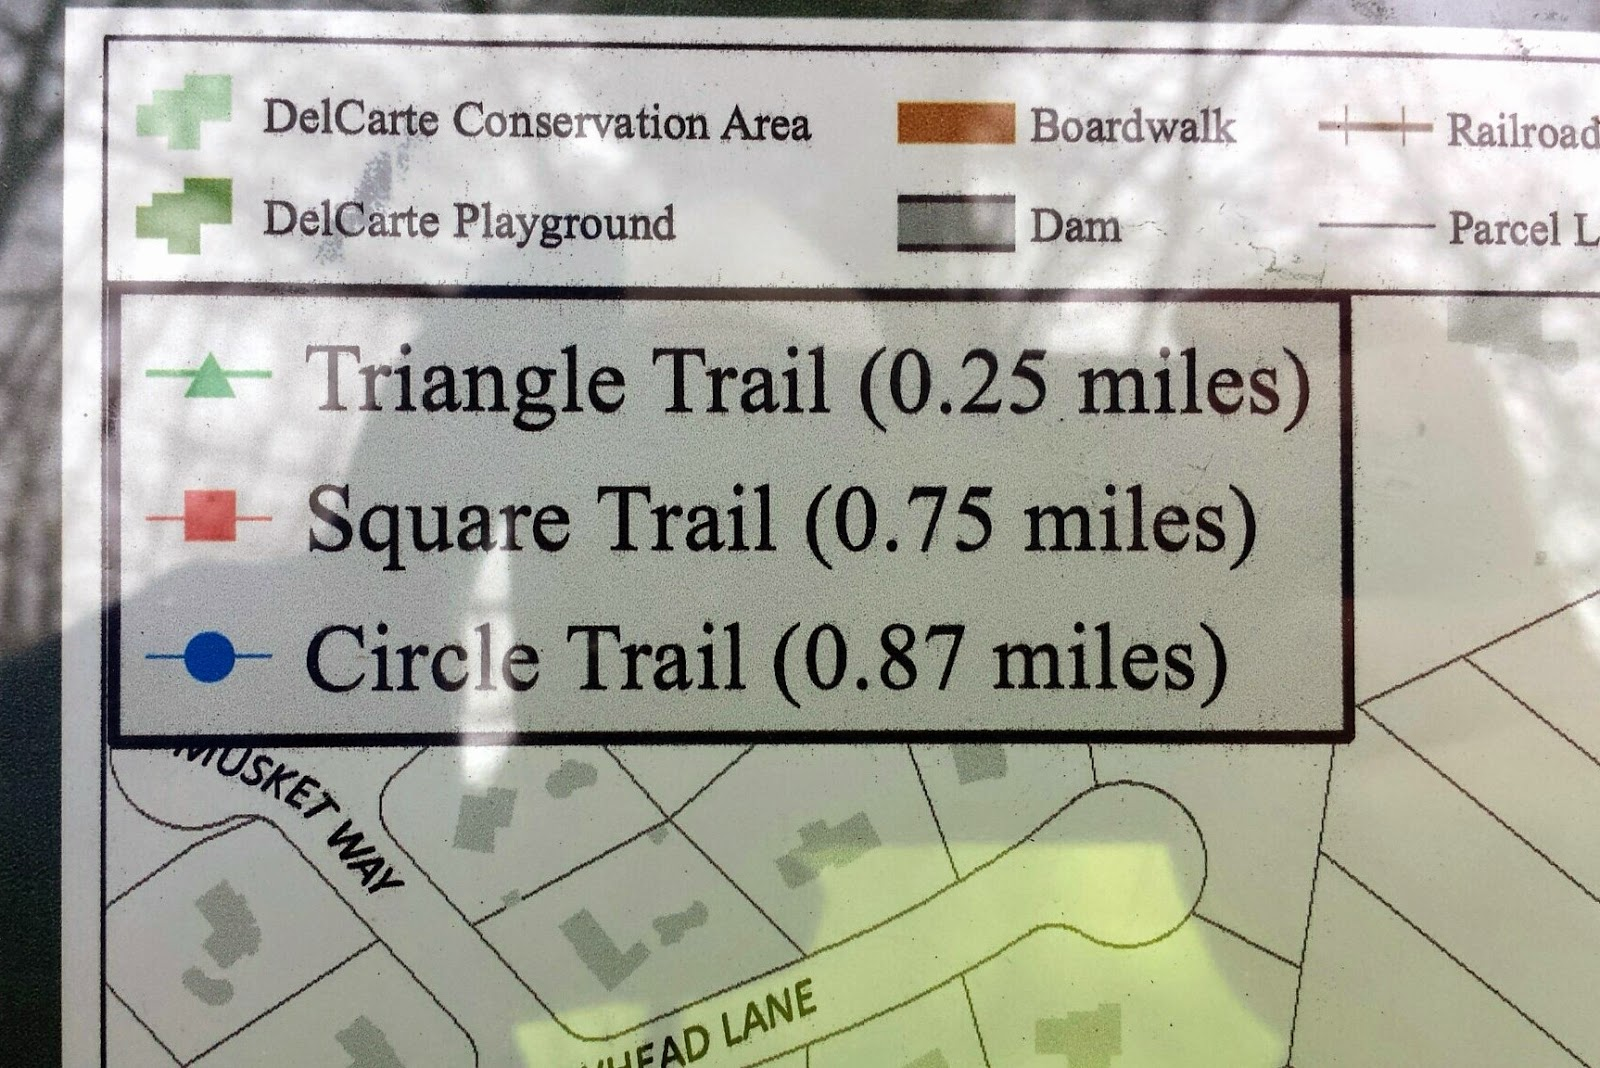 close up showing the key to the trail marking and length